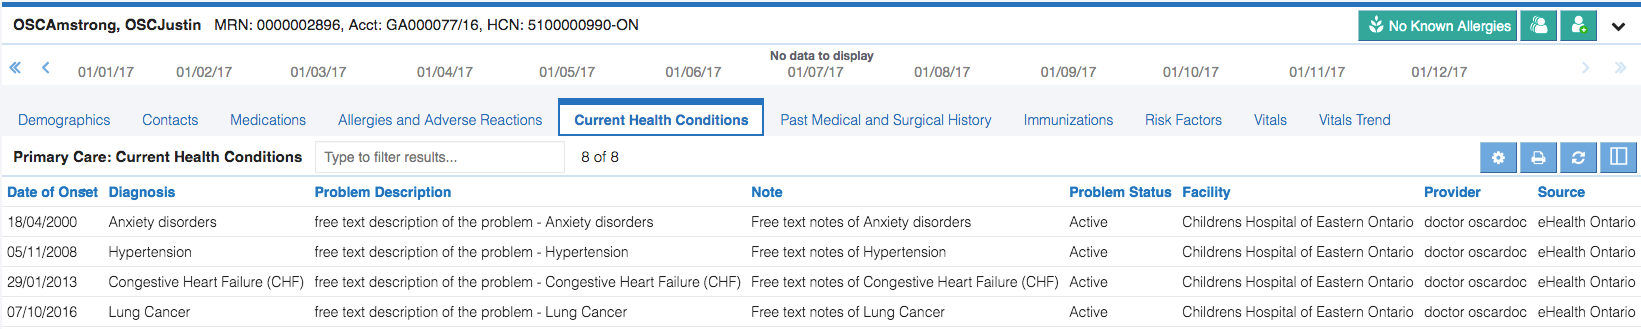 Image of the primary care current health conditions tab